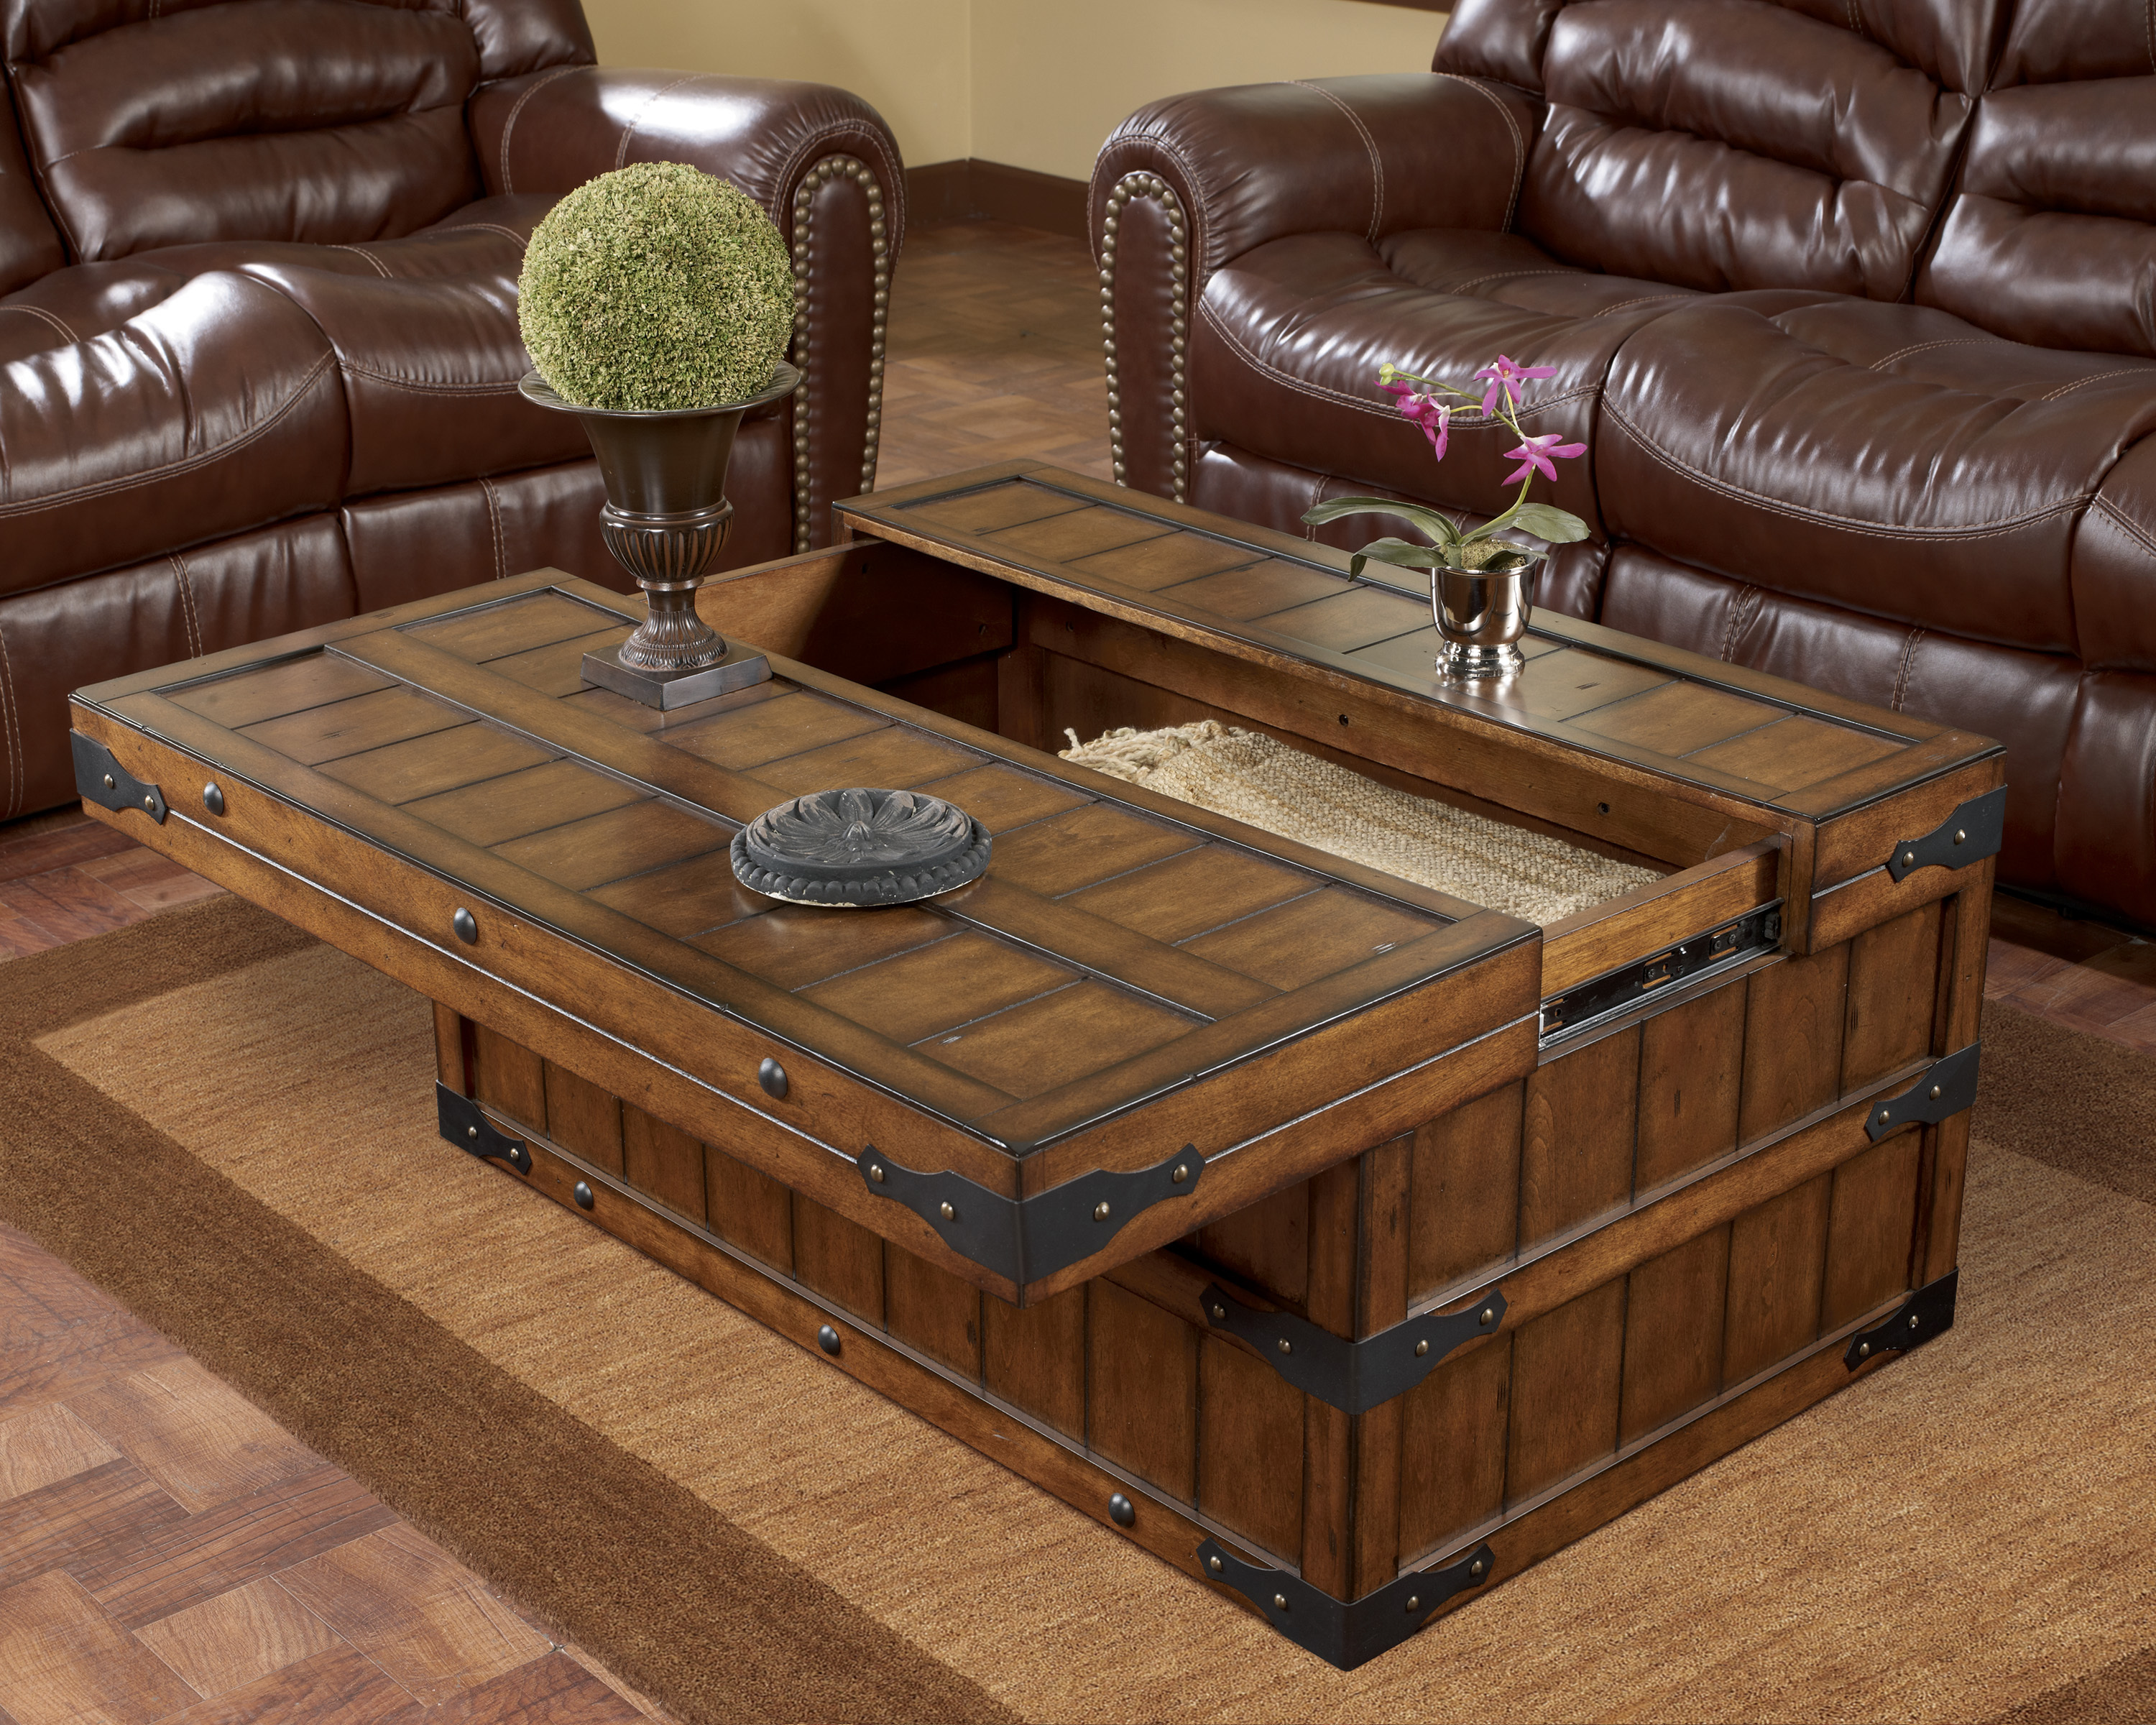 Rustic Wood Coffee Table Design s